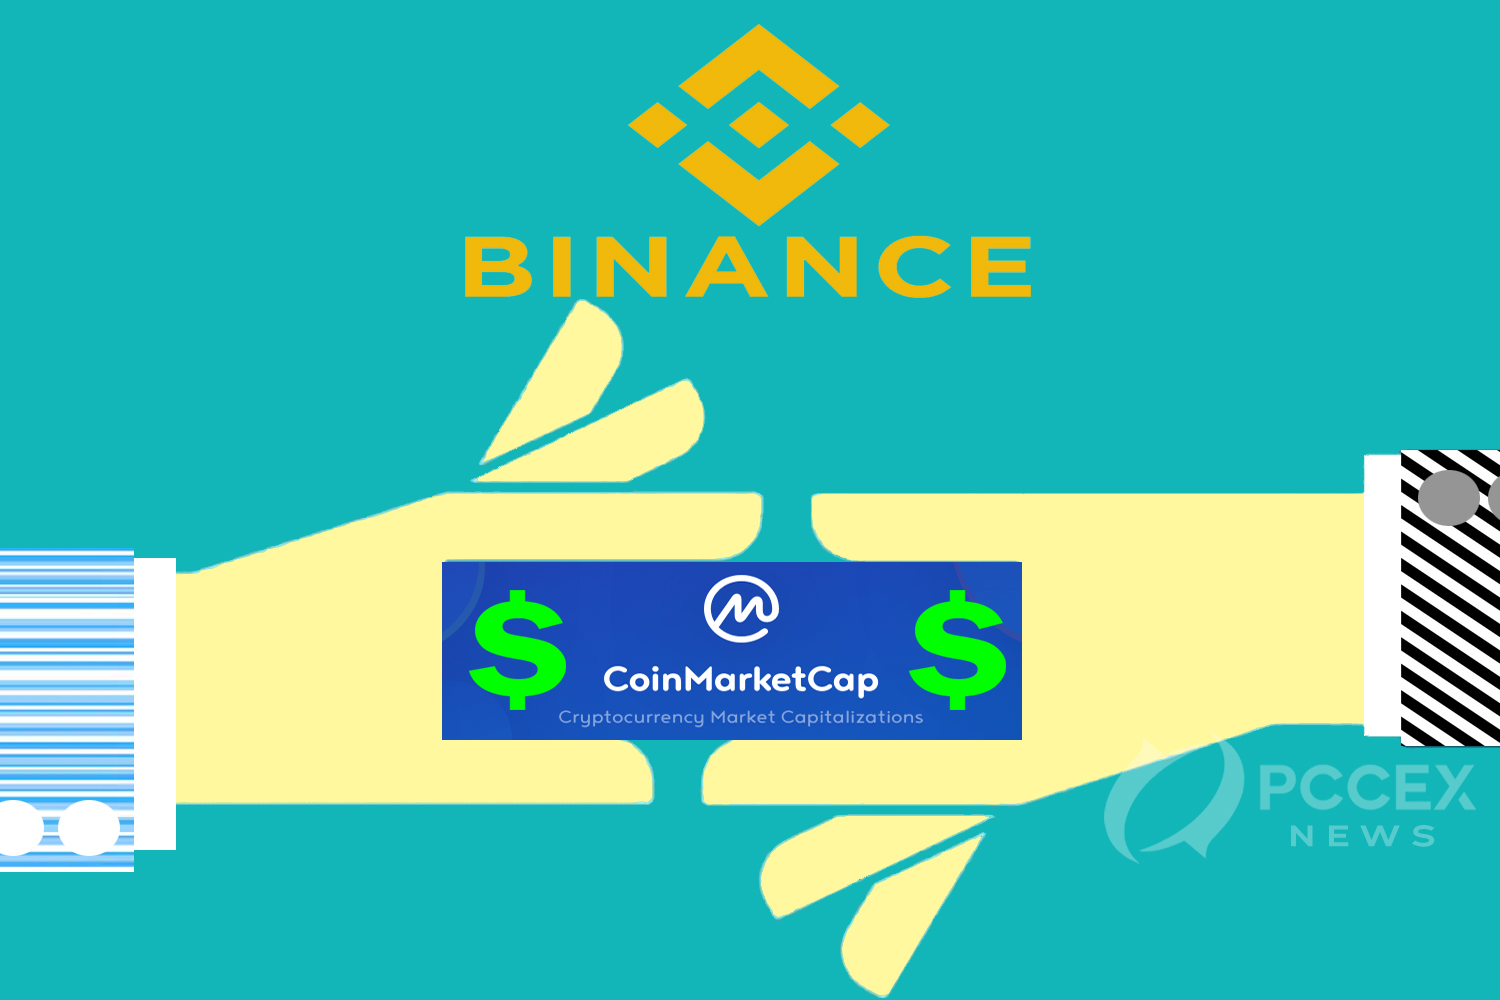 Binance Set To Acquire CoinMarketCap For $400 Million